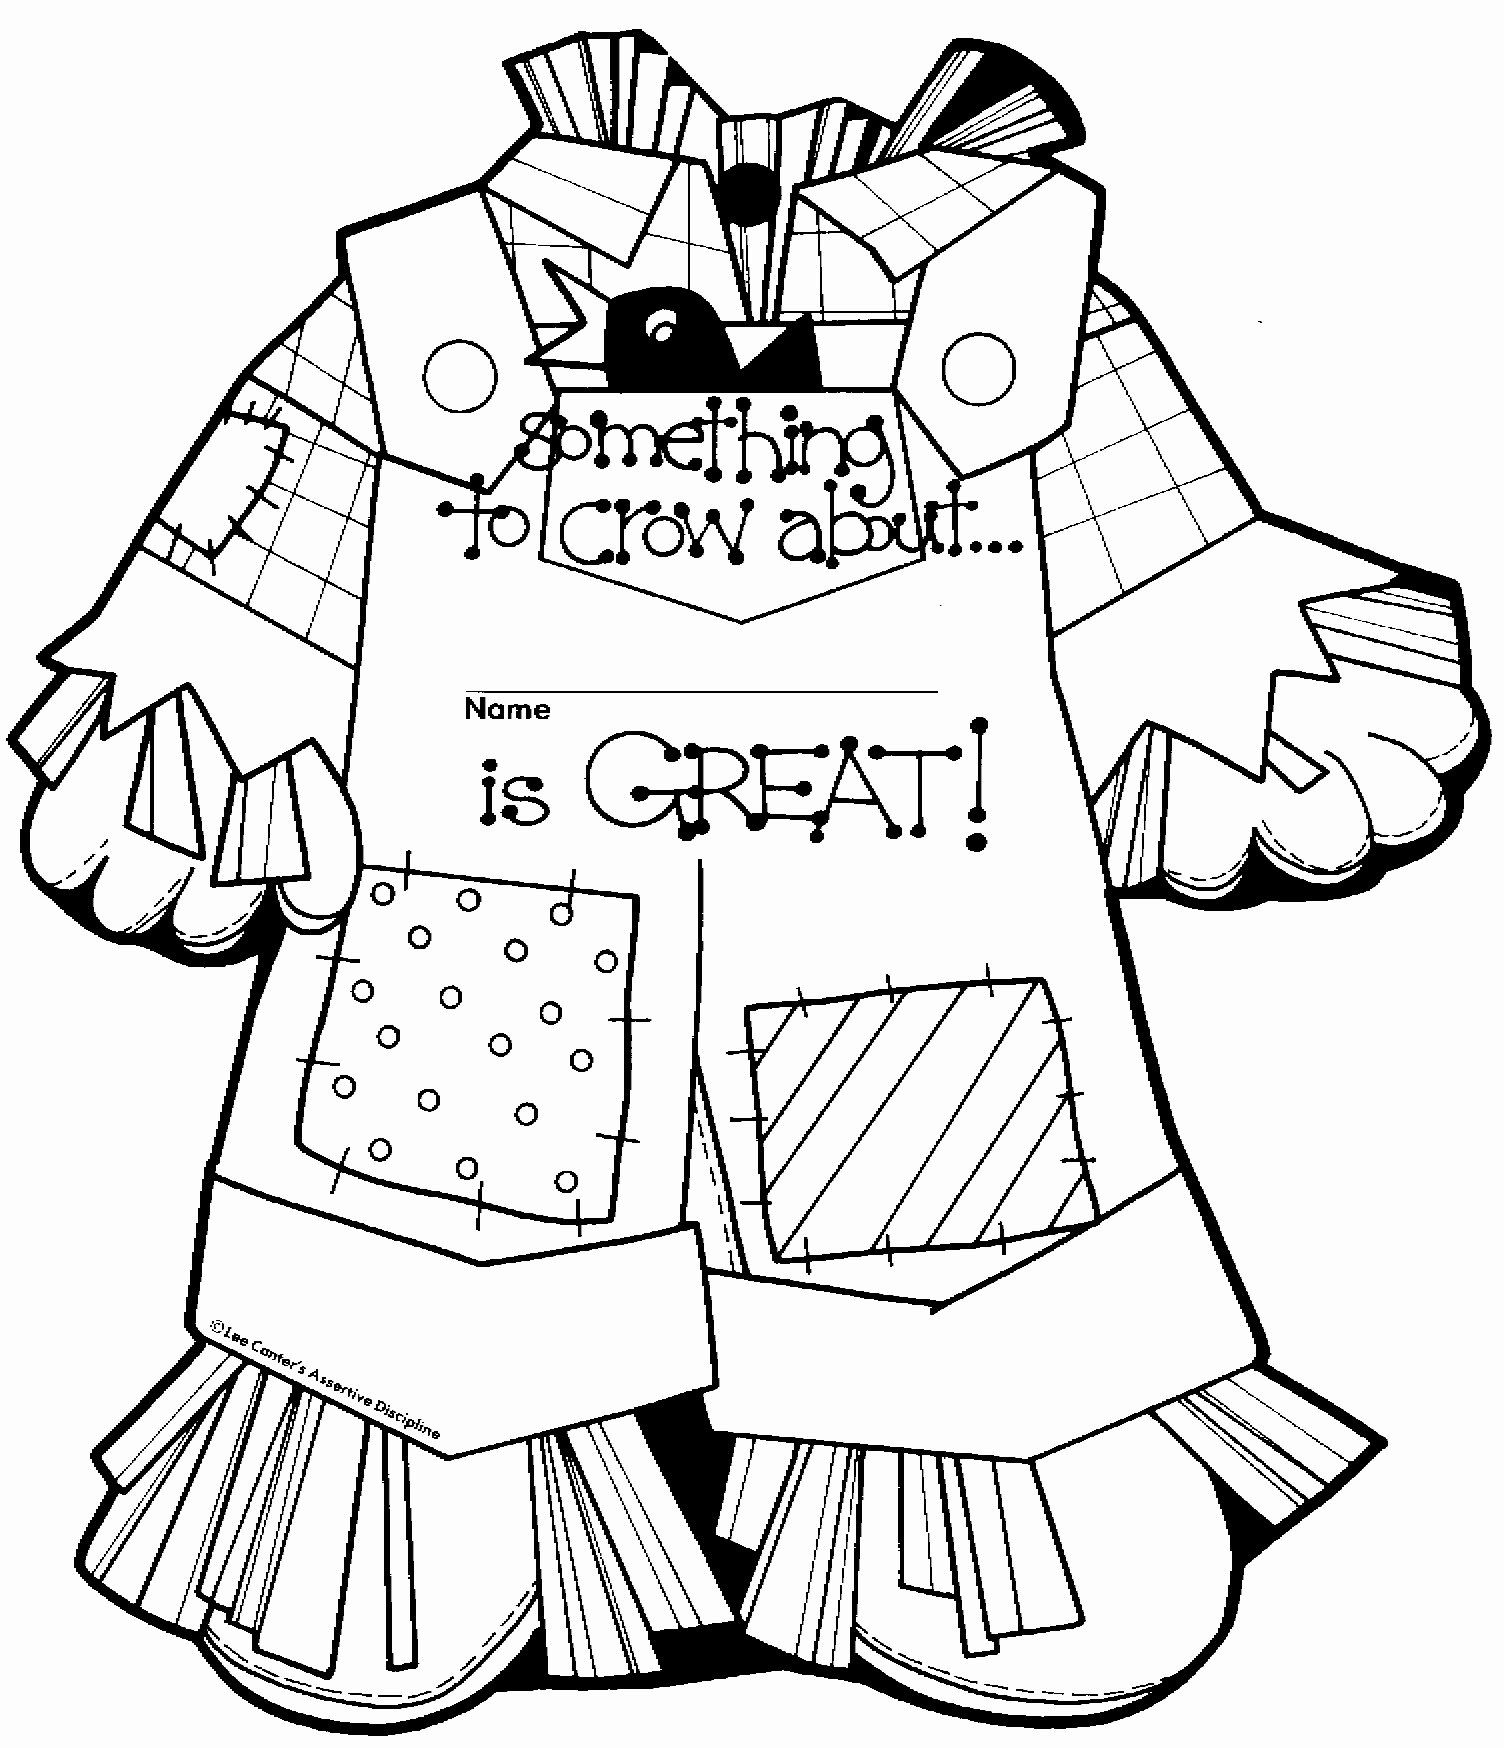 Printable Scarecrow Coloring Page Awesome Coloring Pages 54 Scarecrow Coloring Pag In 2020 Scarecrow Crafts Scarecrow Coloring Pages Free Printable Halloween Scarecrow